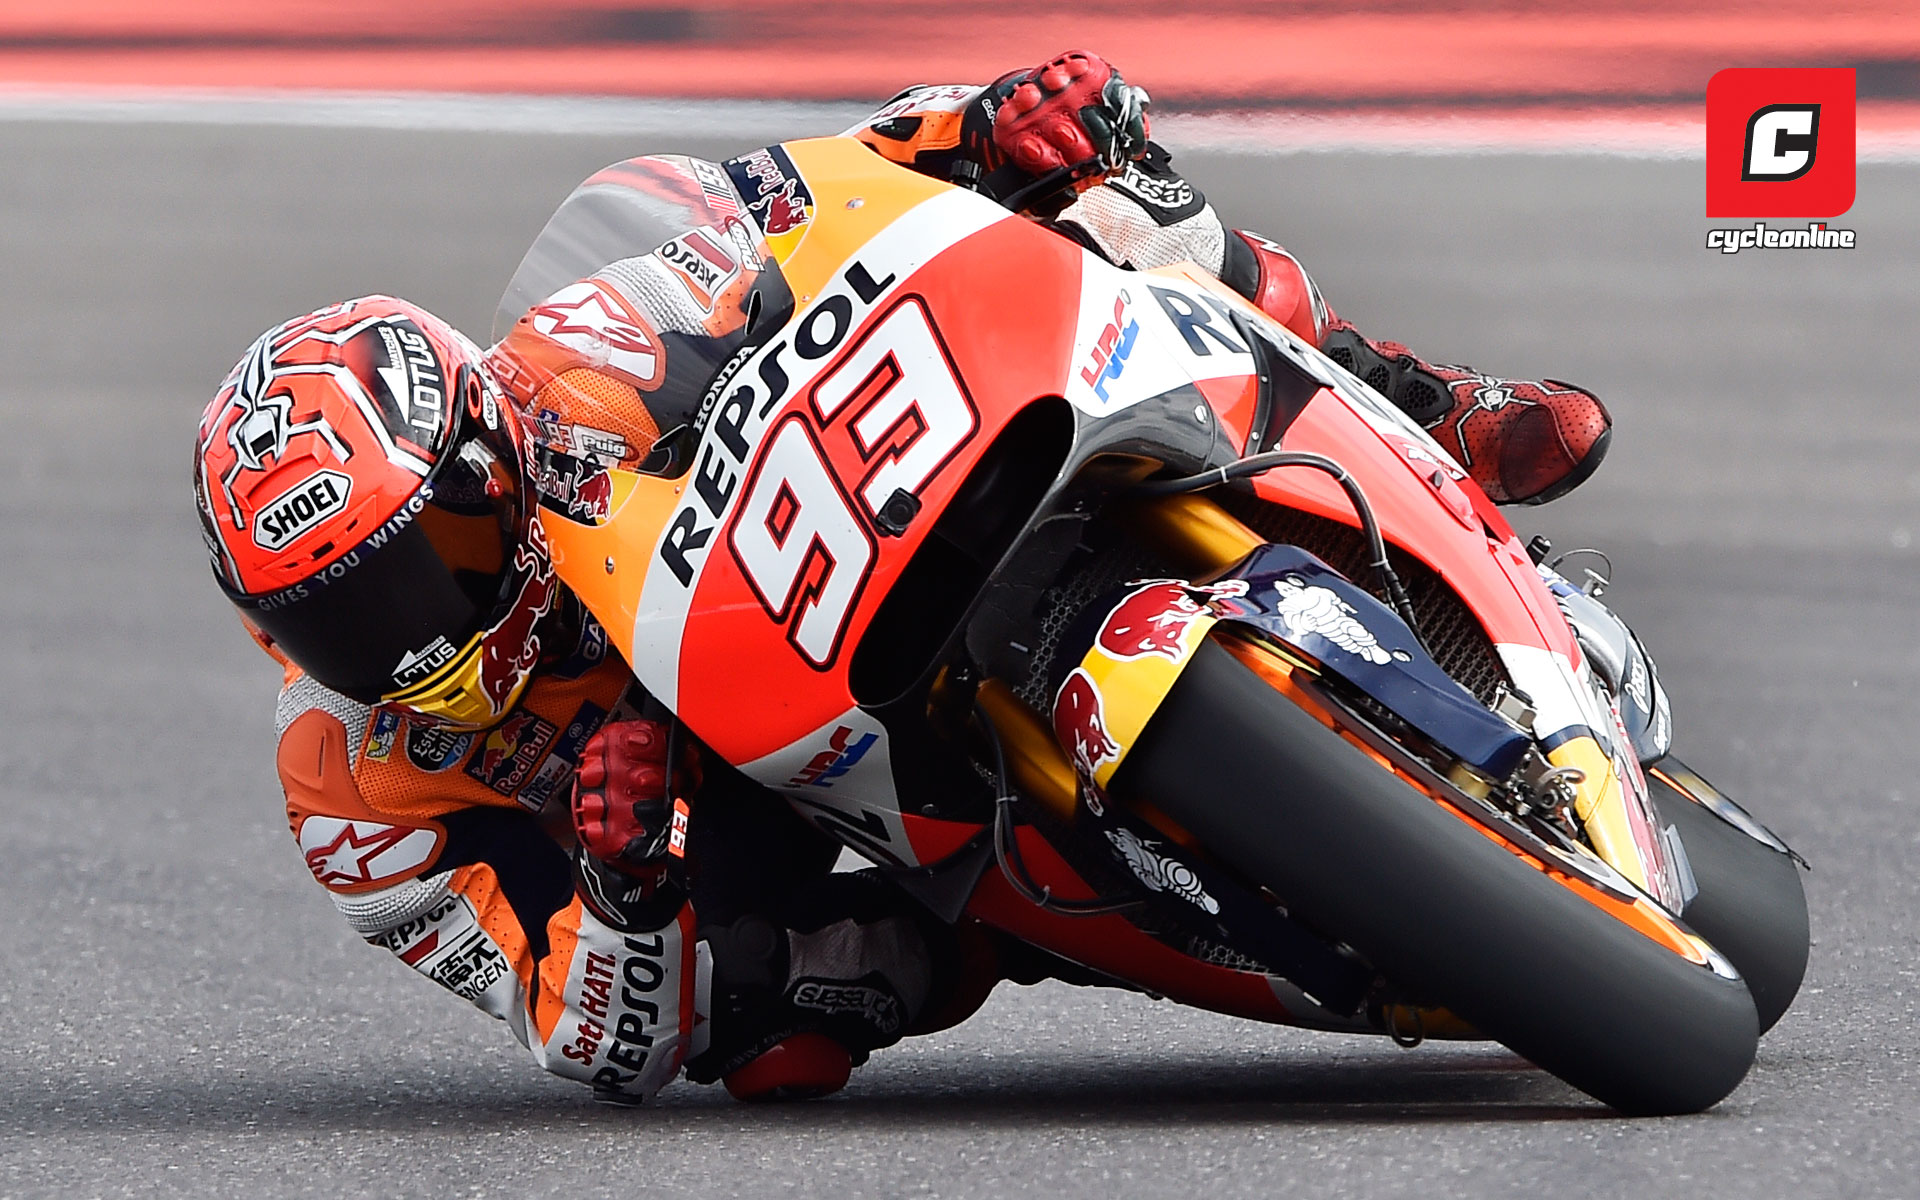 Who Won The Moto Gp | MotoGP 2017 Info, Video, Points Table